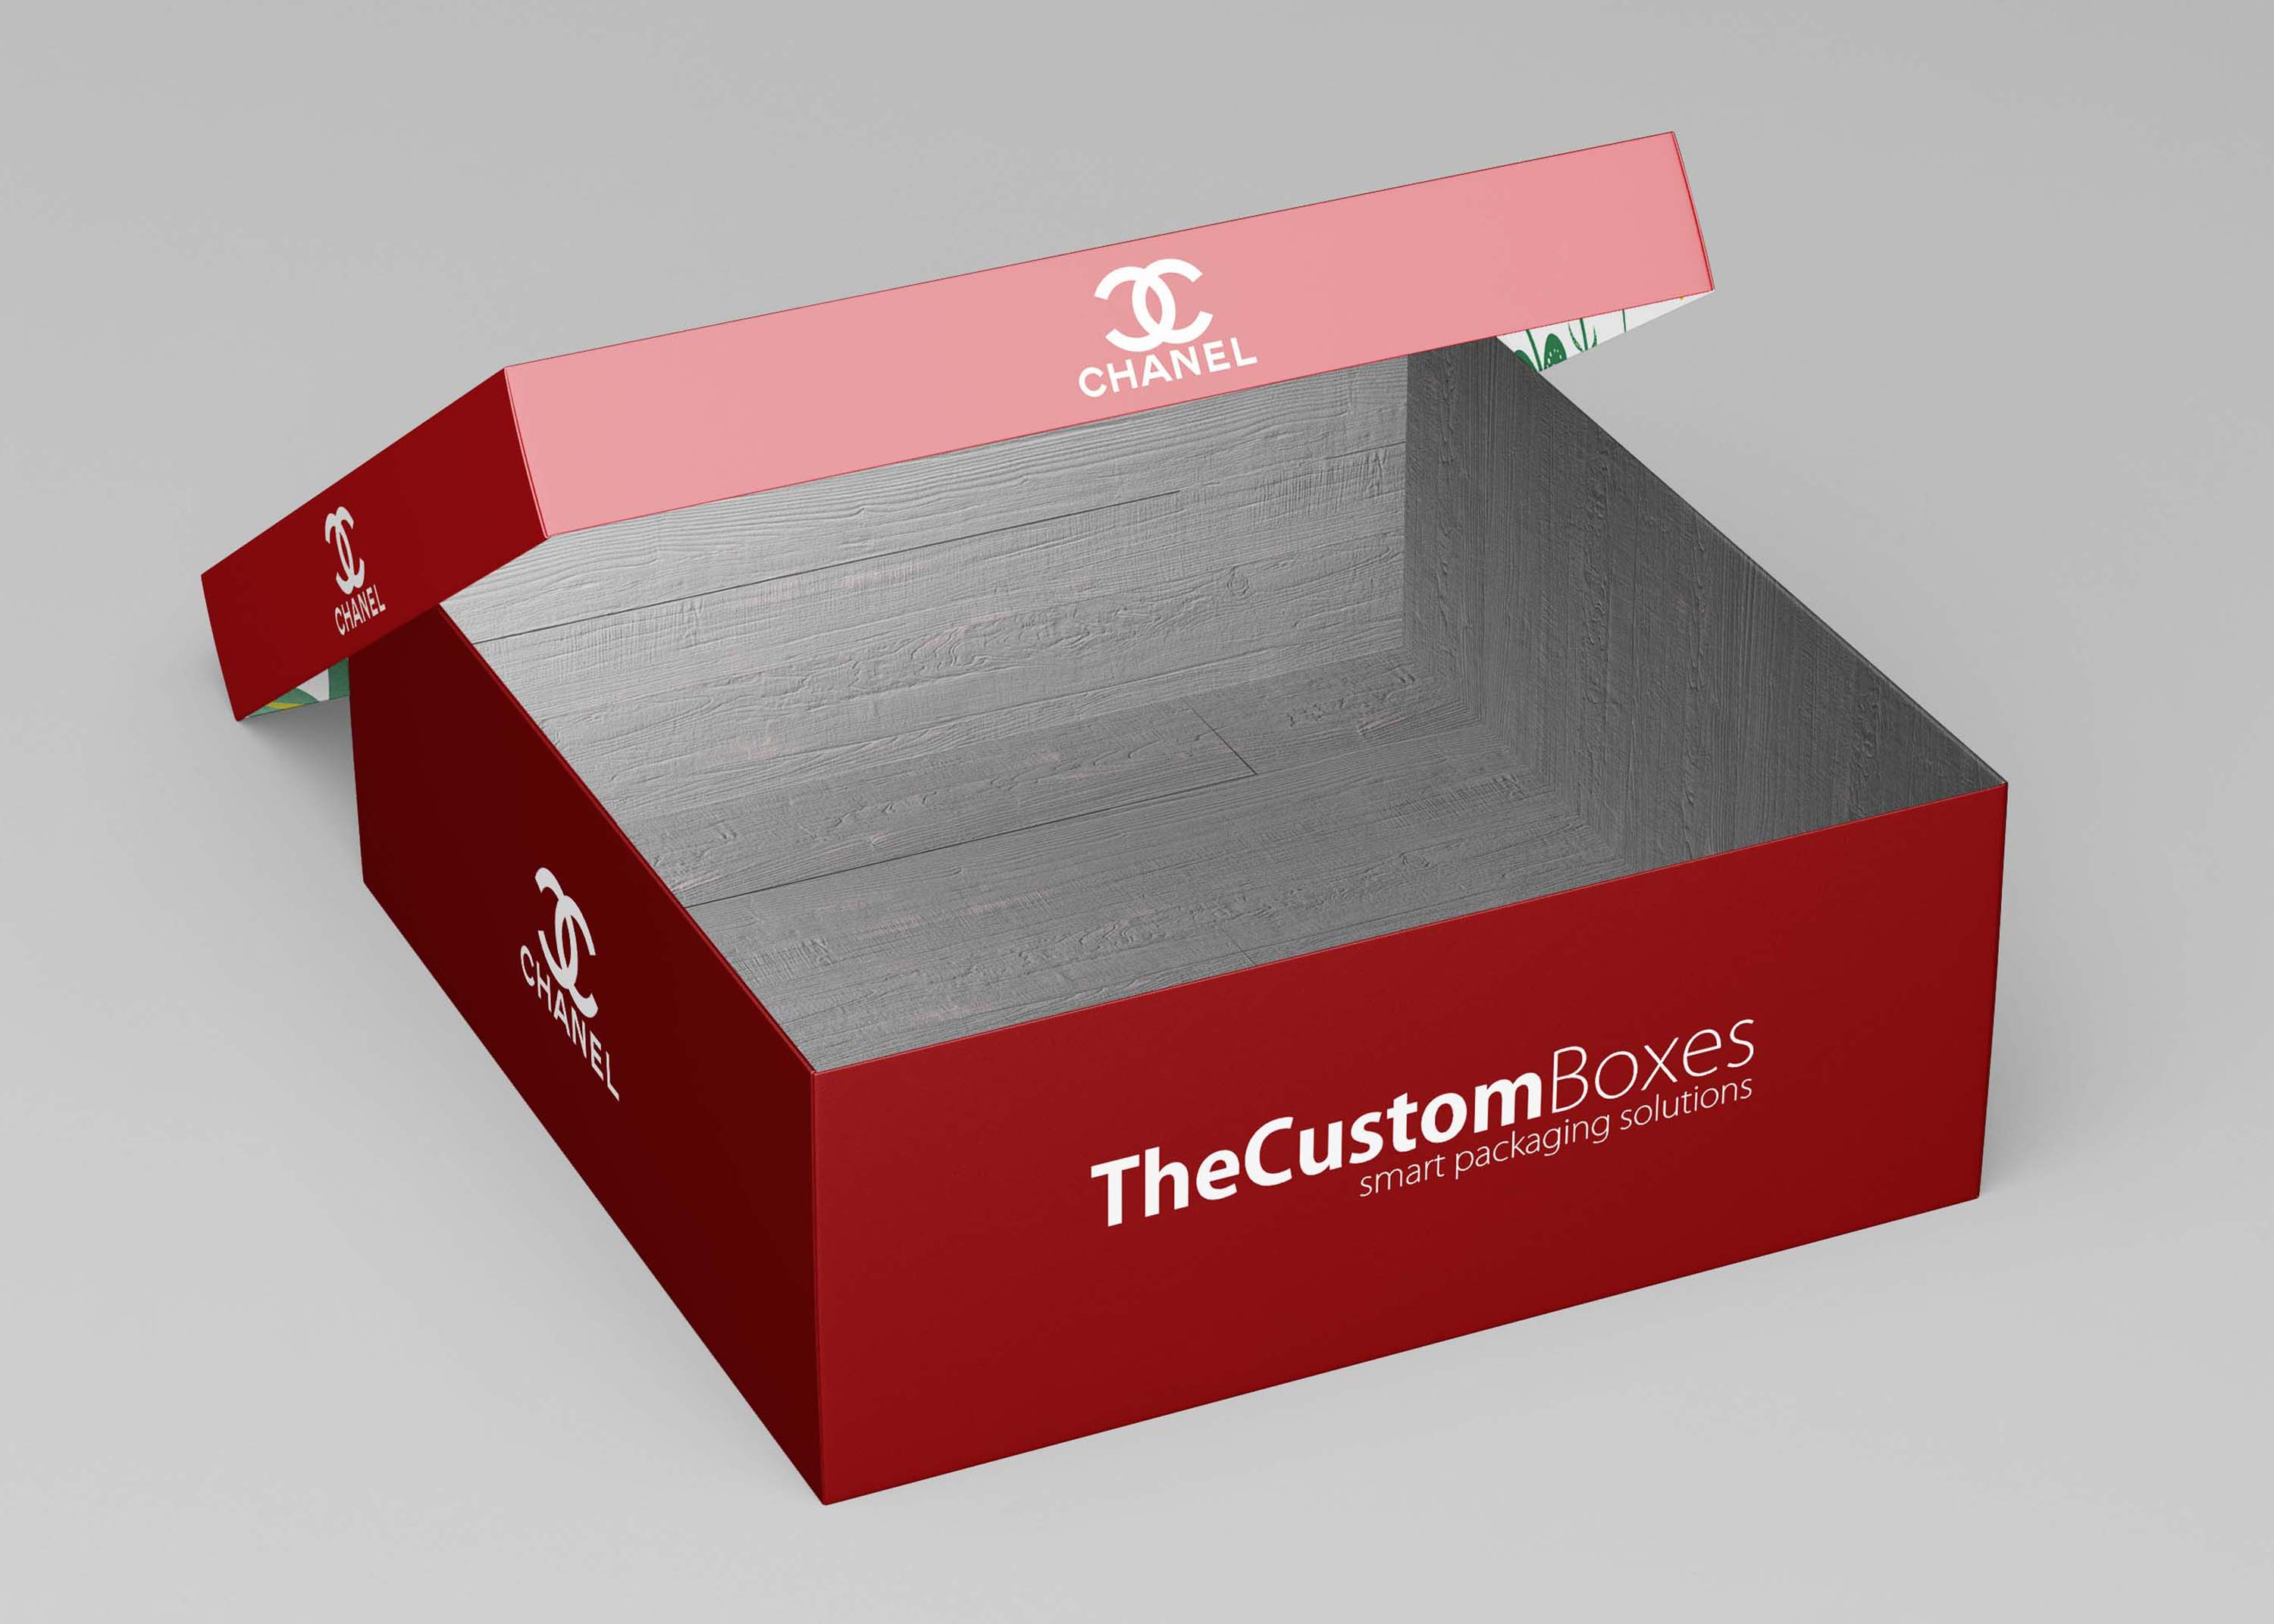 Free Small Boxes Packaging Psd Mockup Free Psd Mockup New Mockup